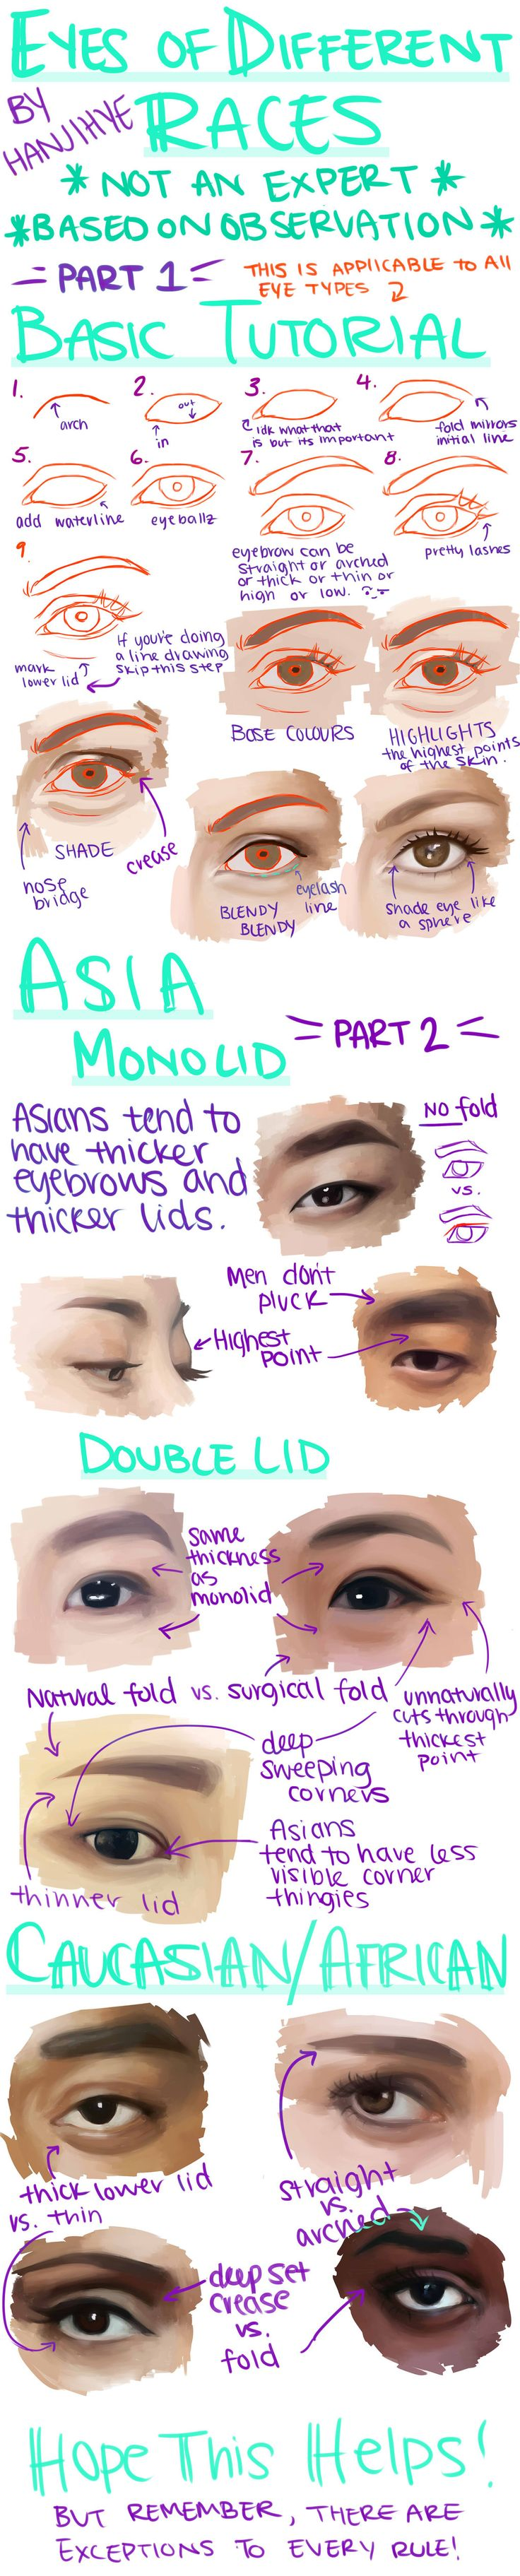 Eyes of Different Races by HaNJiHye.deviantart.com on @deviantART